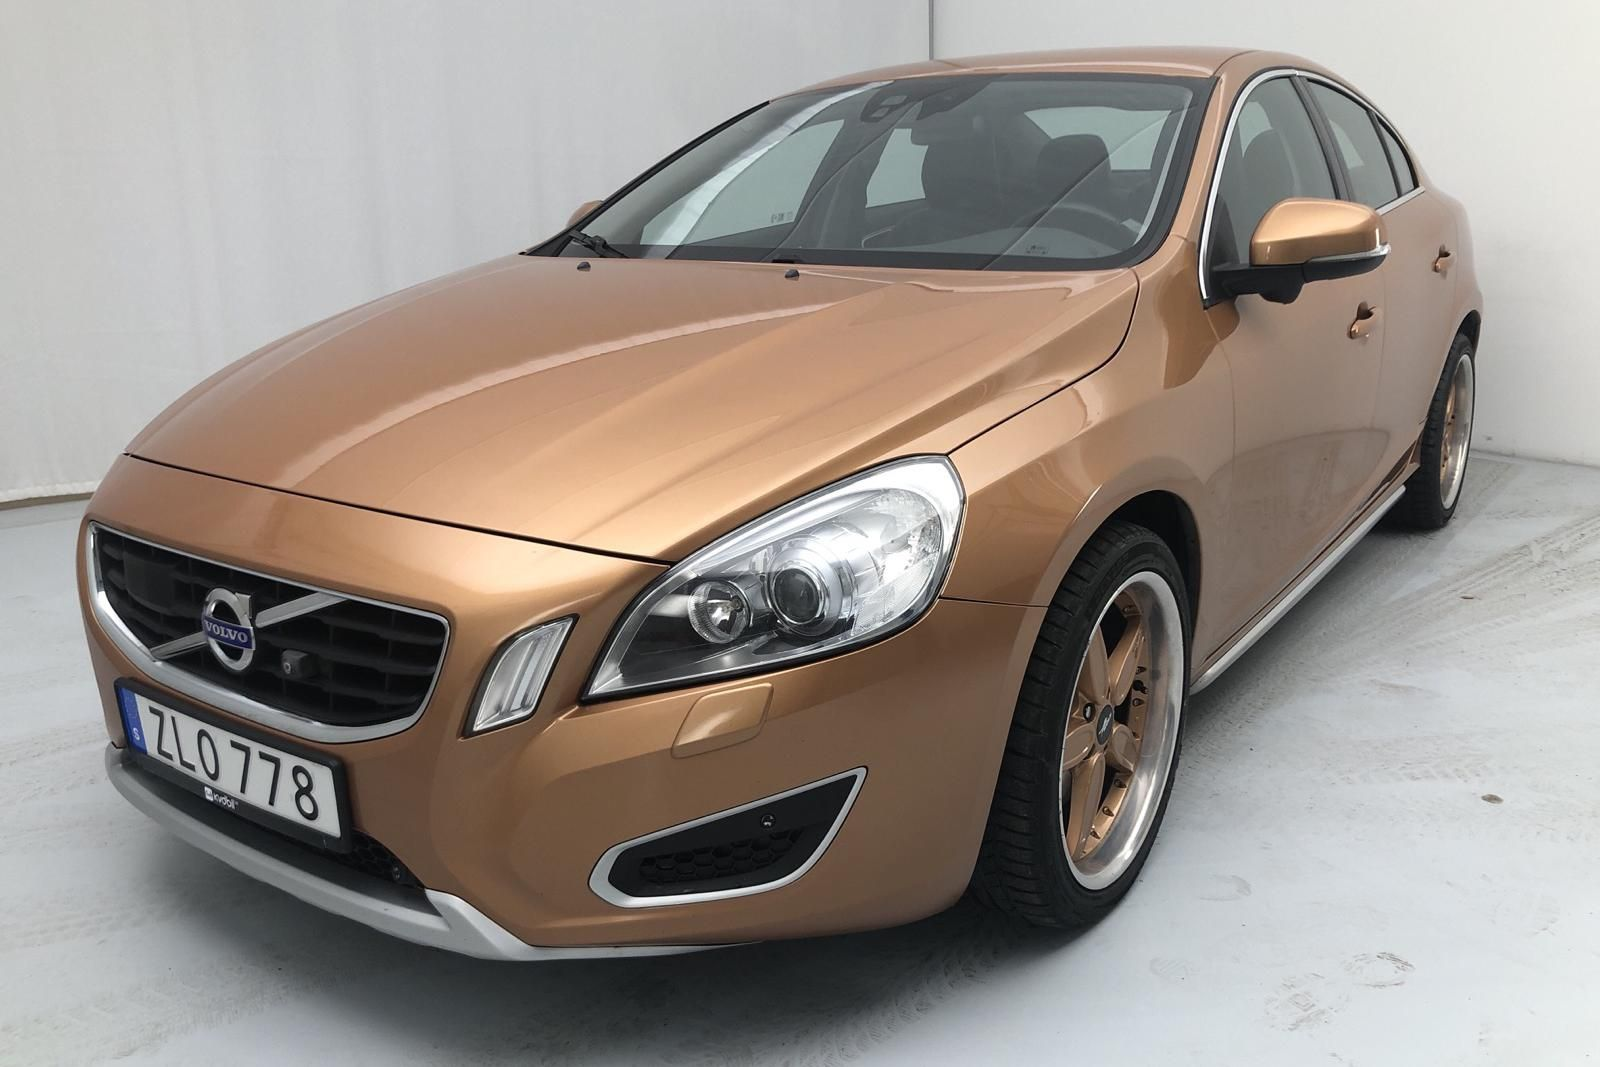 Volvo S60 T6 AWD (304 PS)